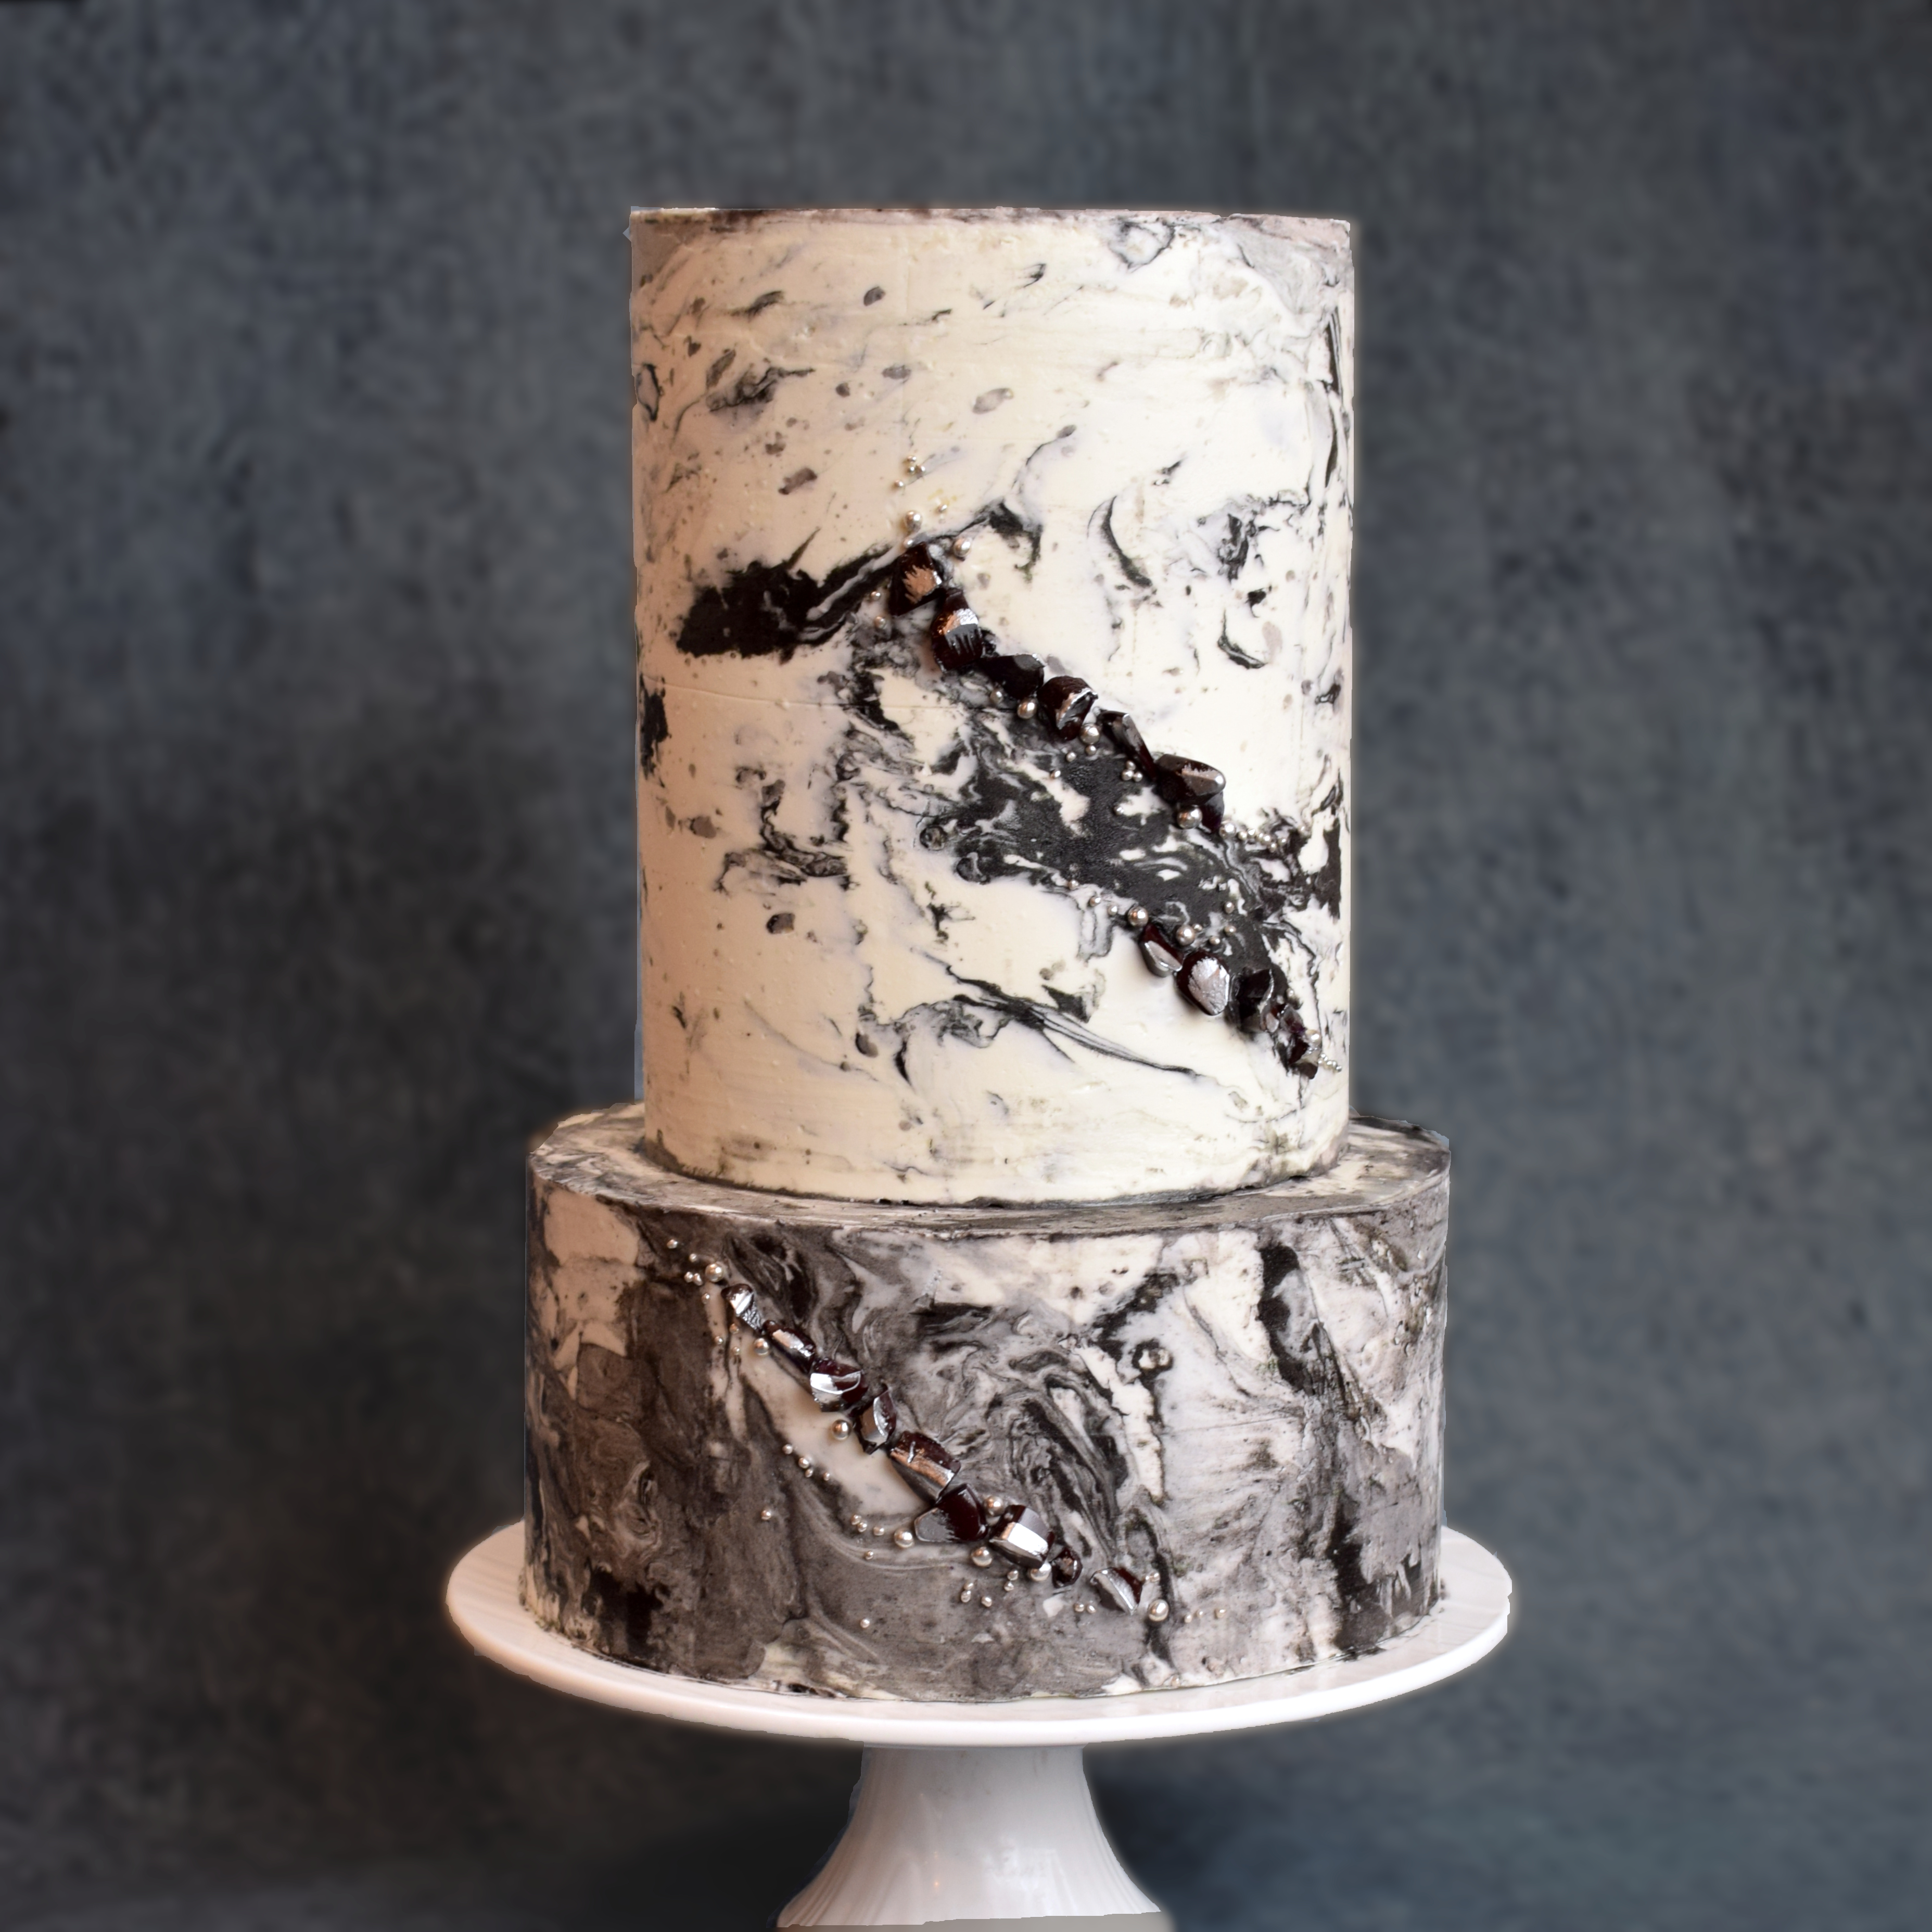 Marbled buttercream cake